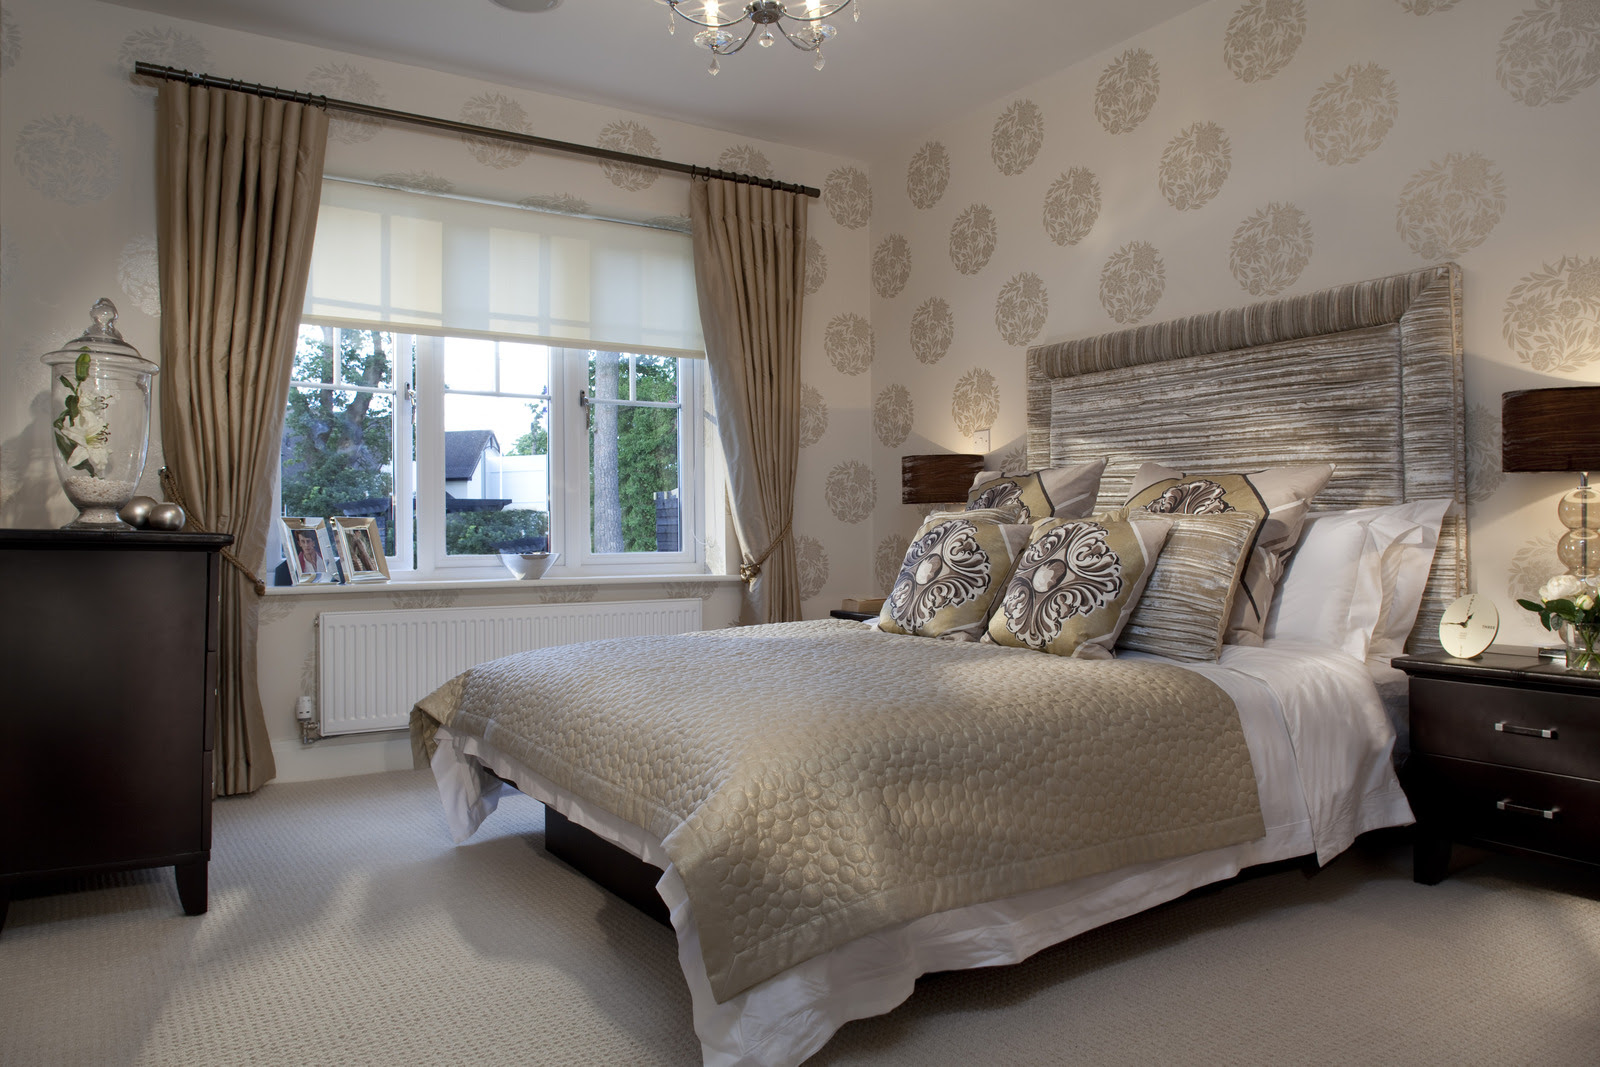 Stylish Apartment Bedroom Ideas for Comfort and Style ...